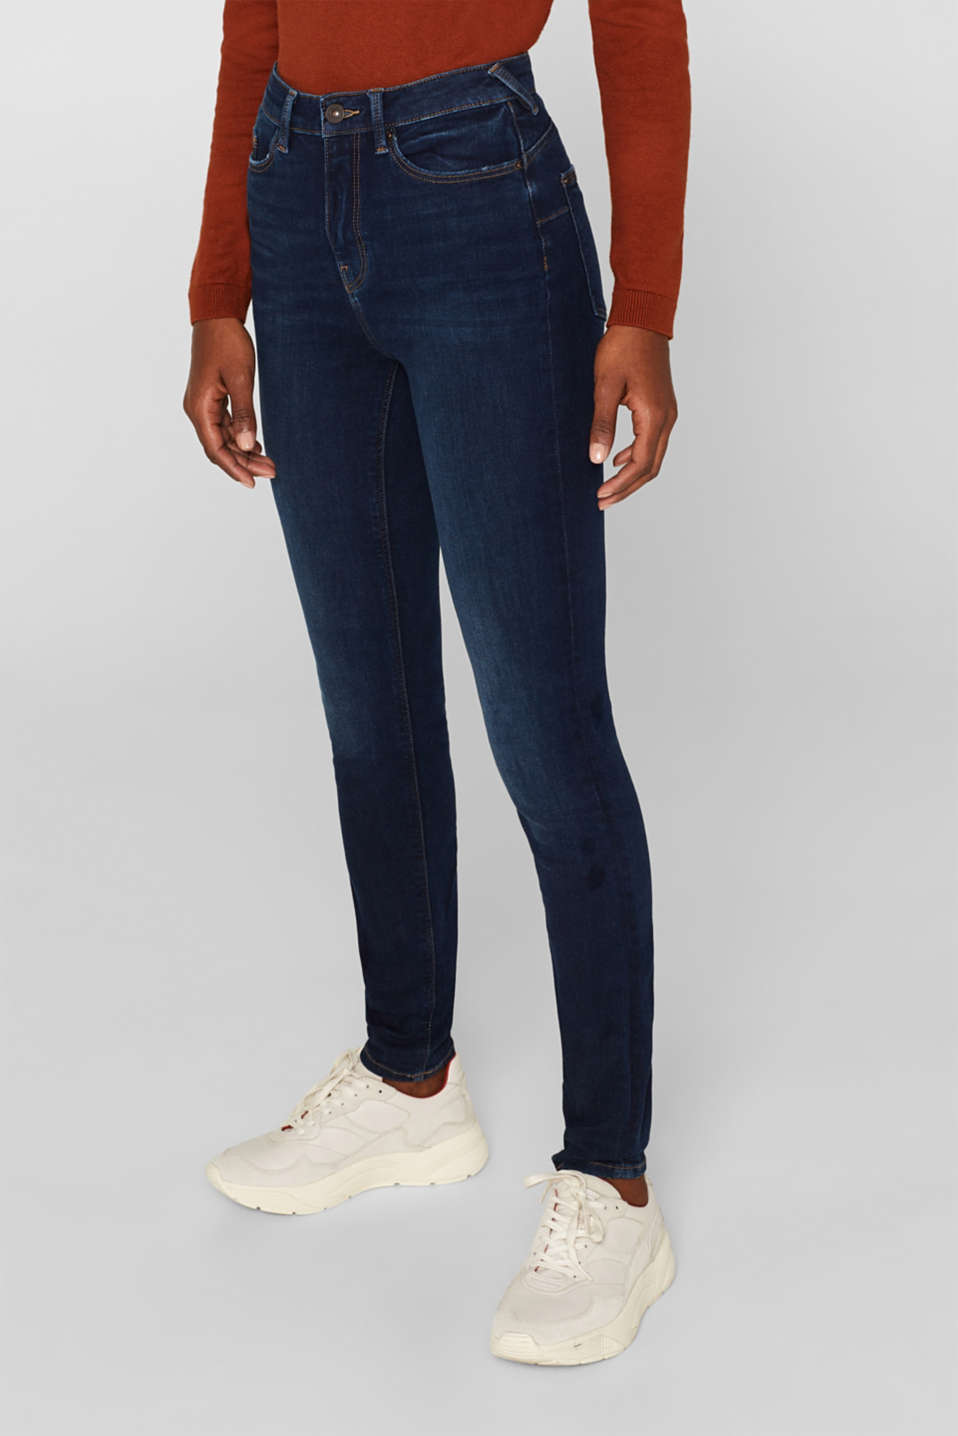 With TENCEL™: Shaping jeans with two-way stretch, BLUE DARK WASH, detail image number 6